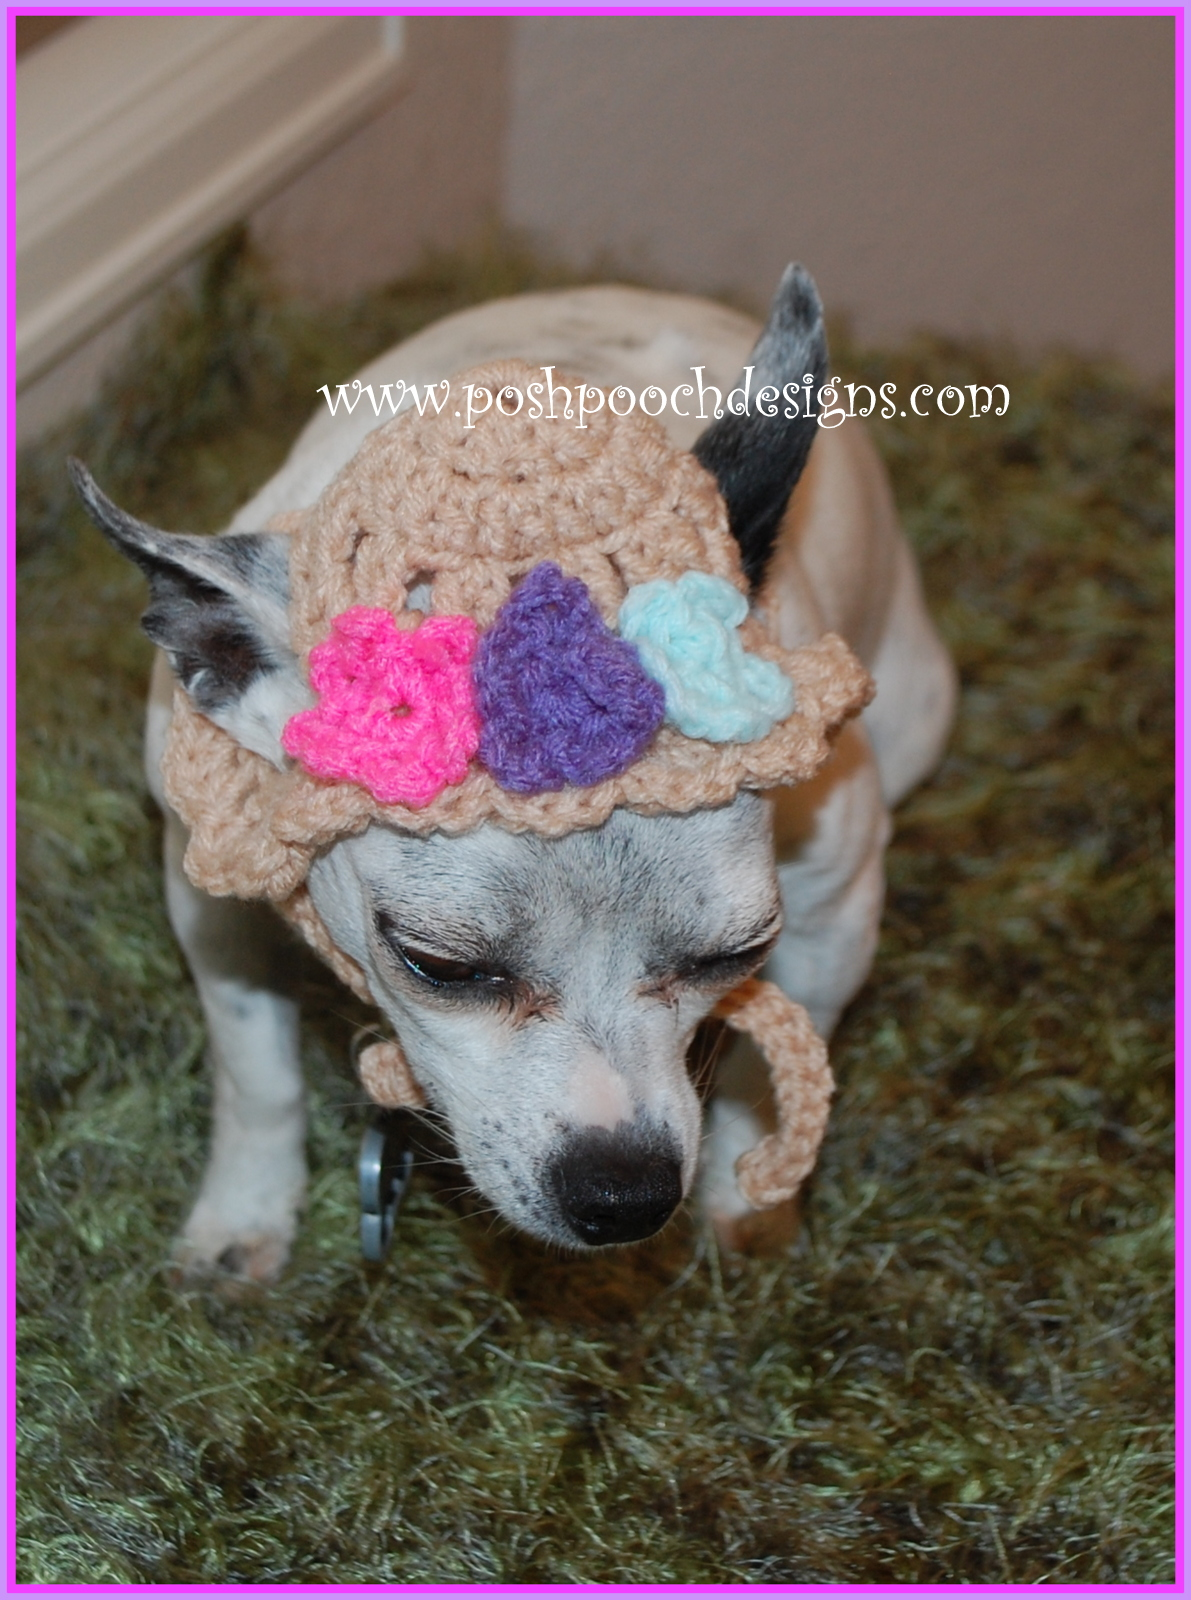 Posh Pooch Designs Dog Clothes: Spring Flowers Dog Hat - Crochet Pattern